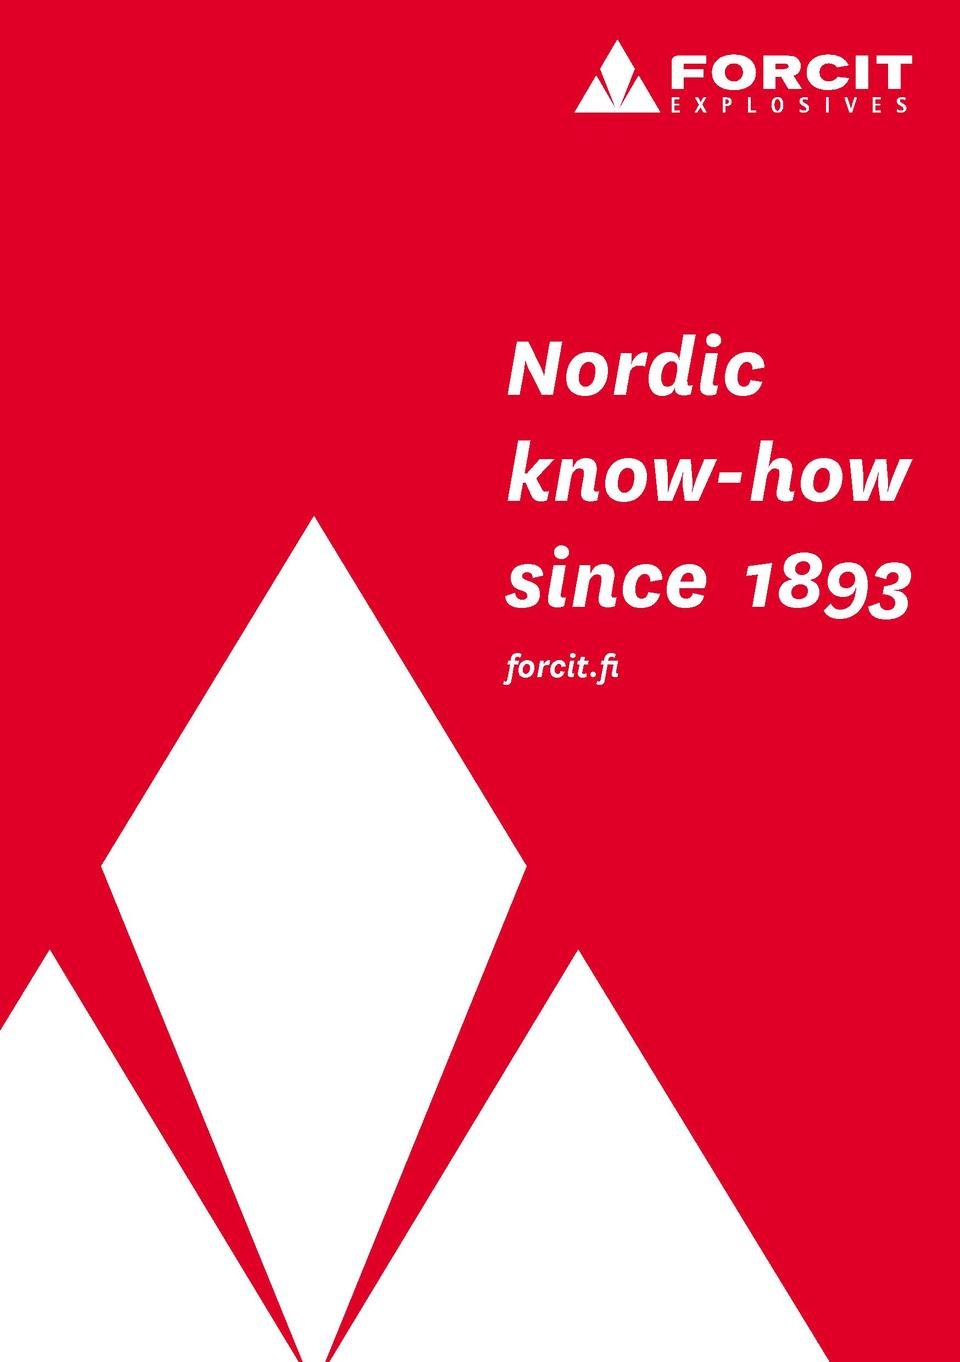 Nordic know-how since 1893 forcit.fi